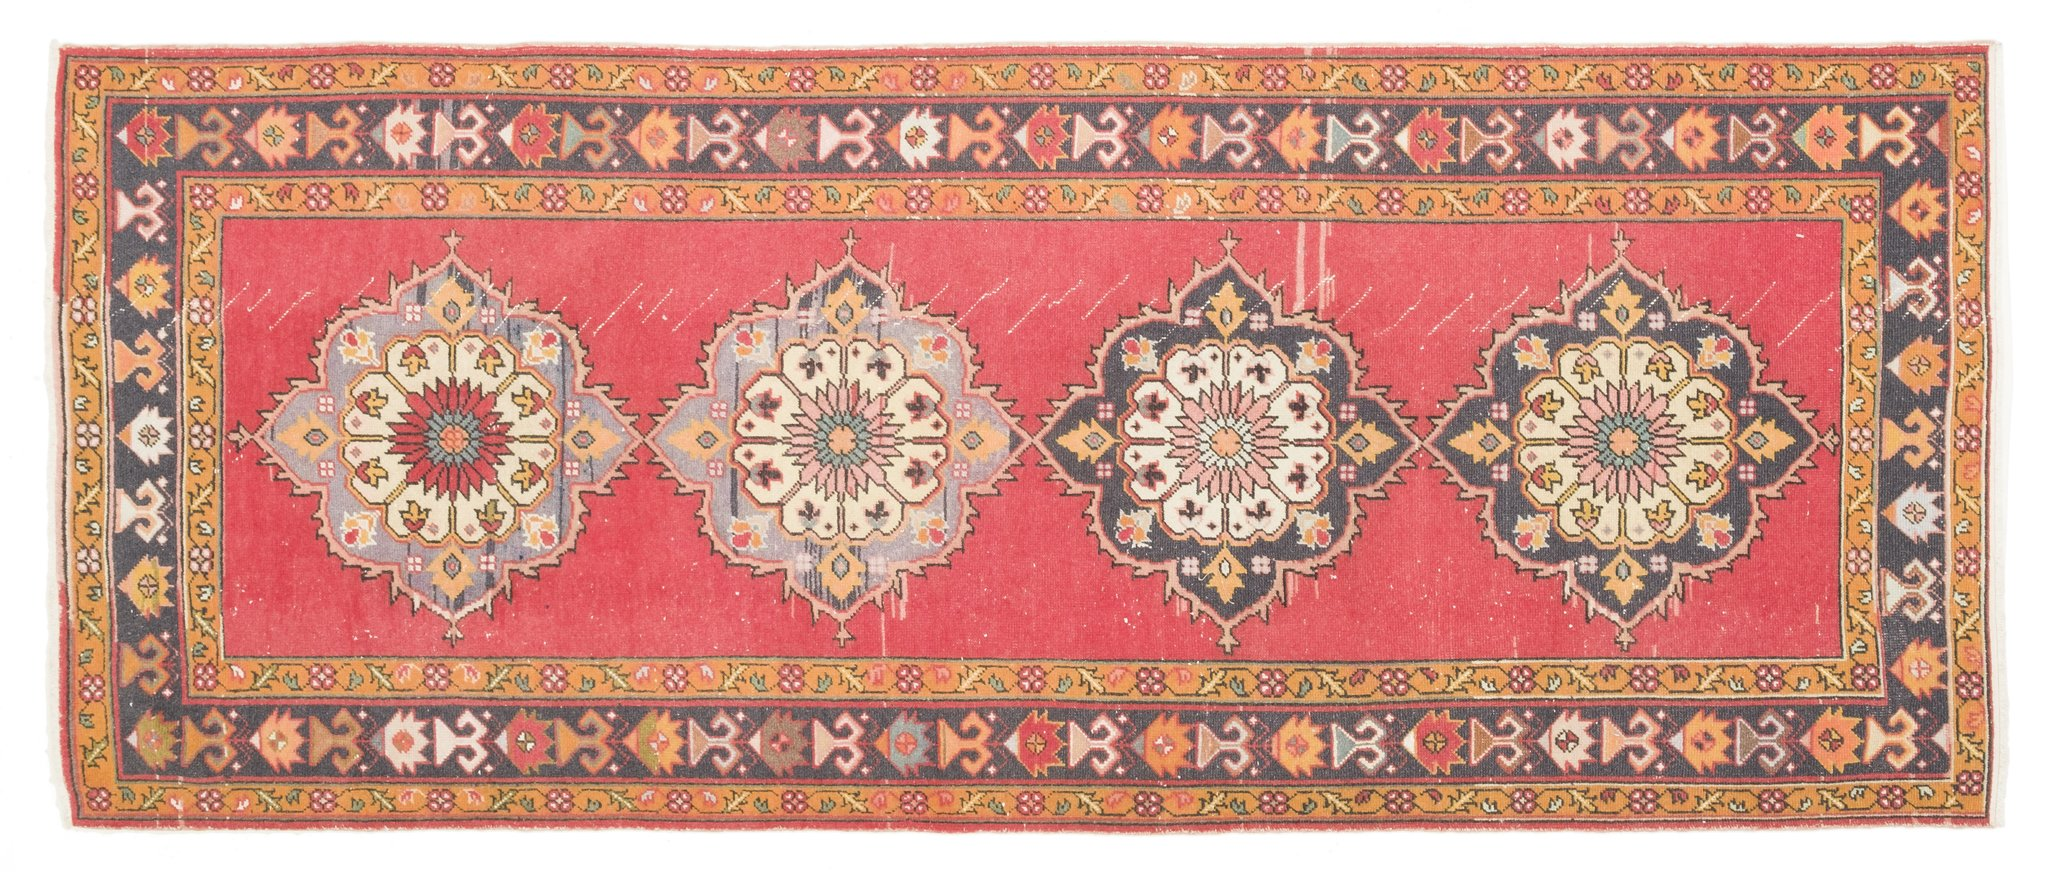 Vintage Turkish Runner Rug Fadri